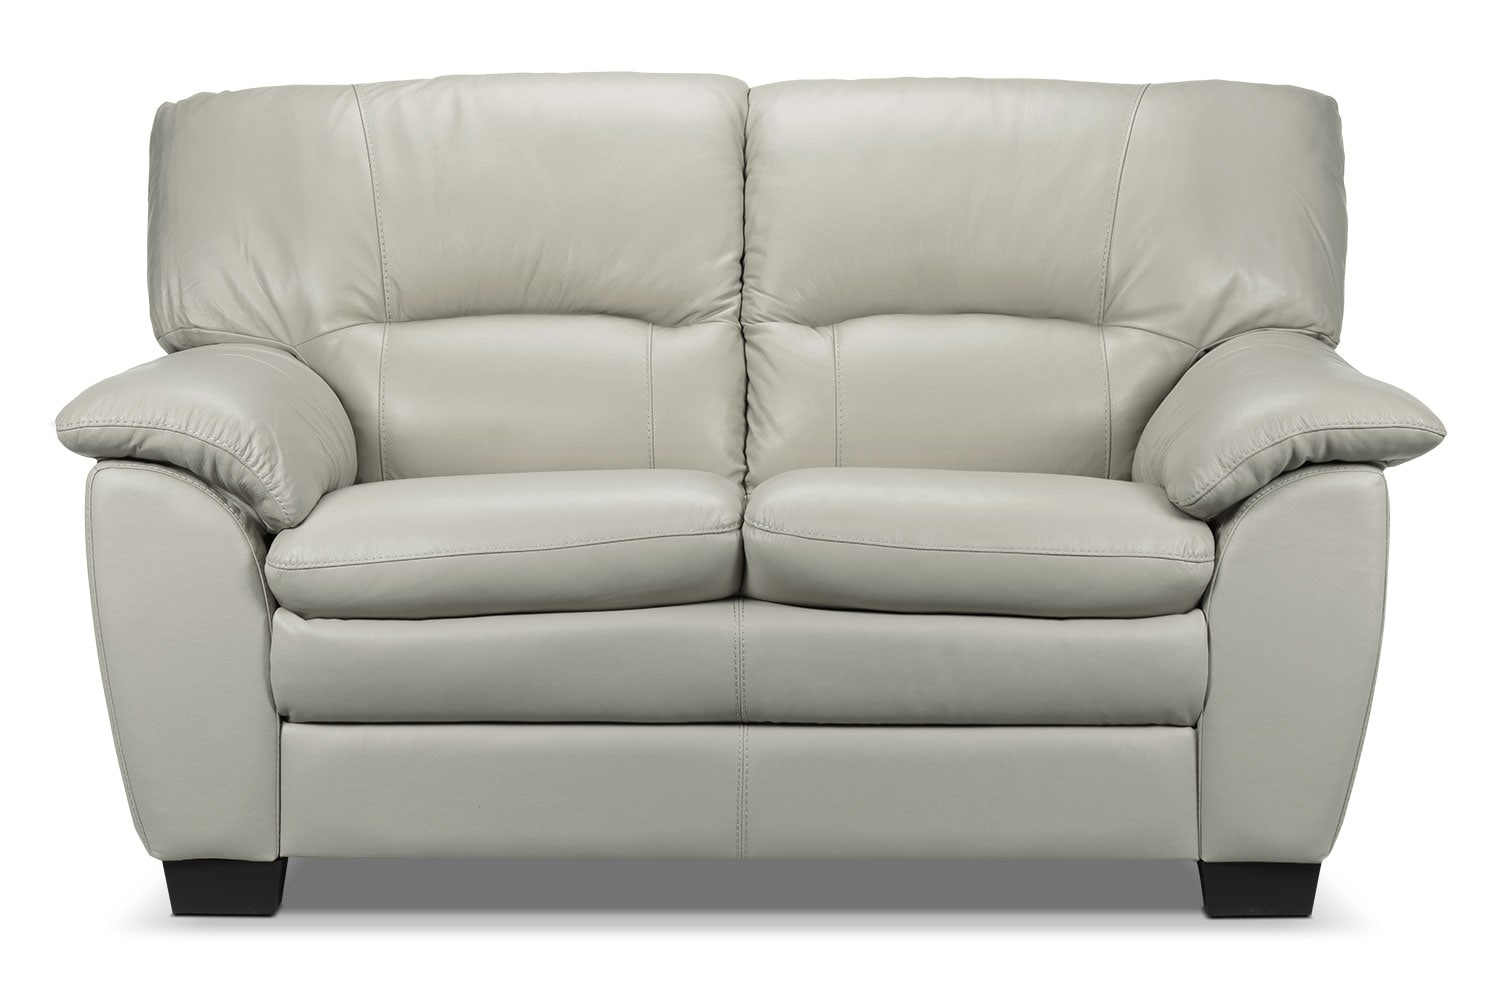 Rodero Loveseat - Grey